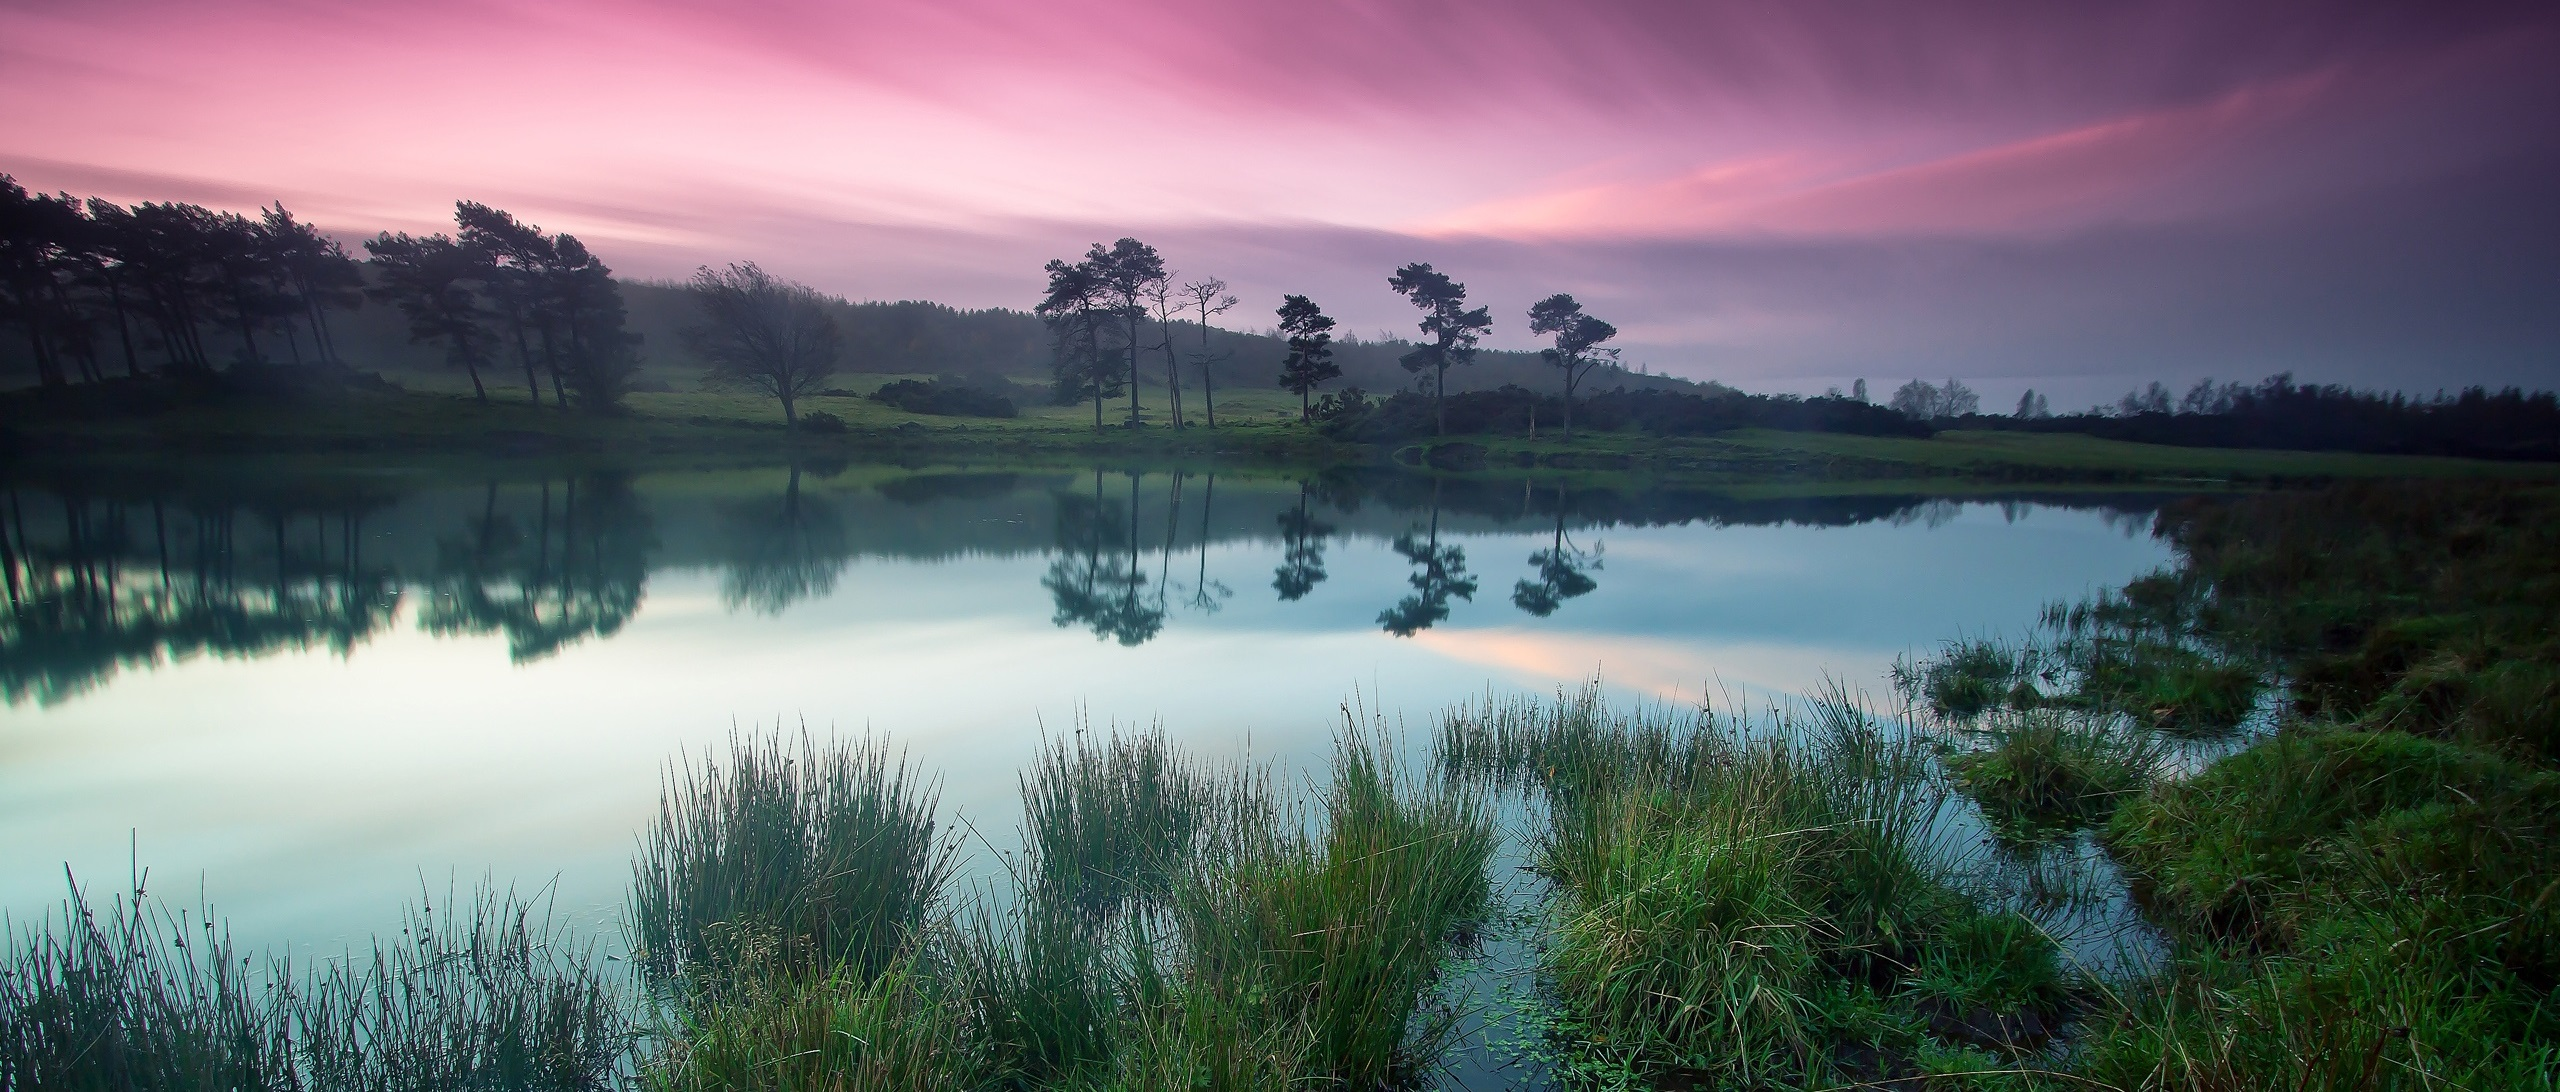 Dusk-beauty-tranquil-lakes-green-trees-purple-sky_2560x16001